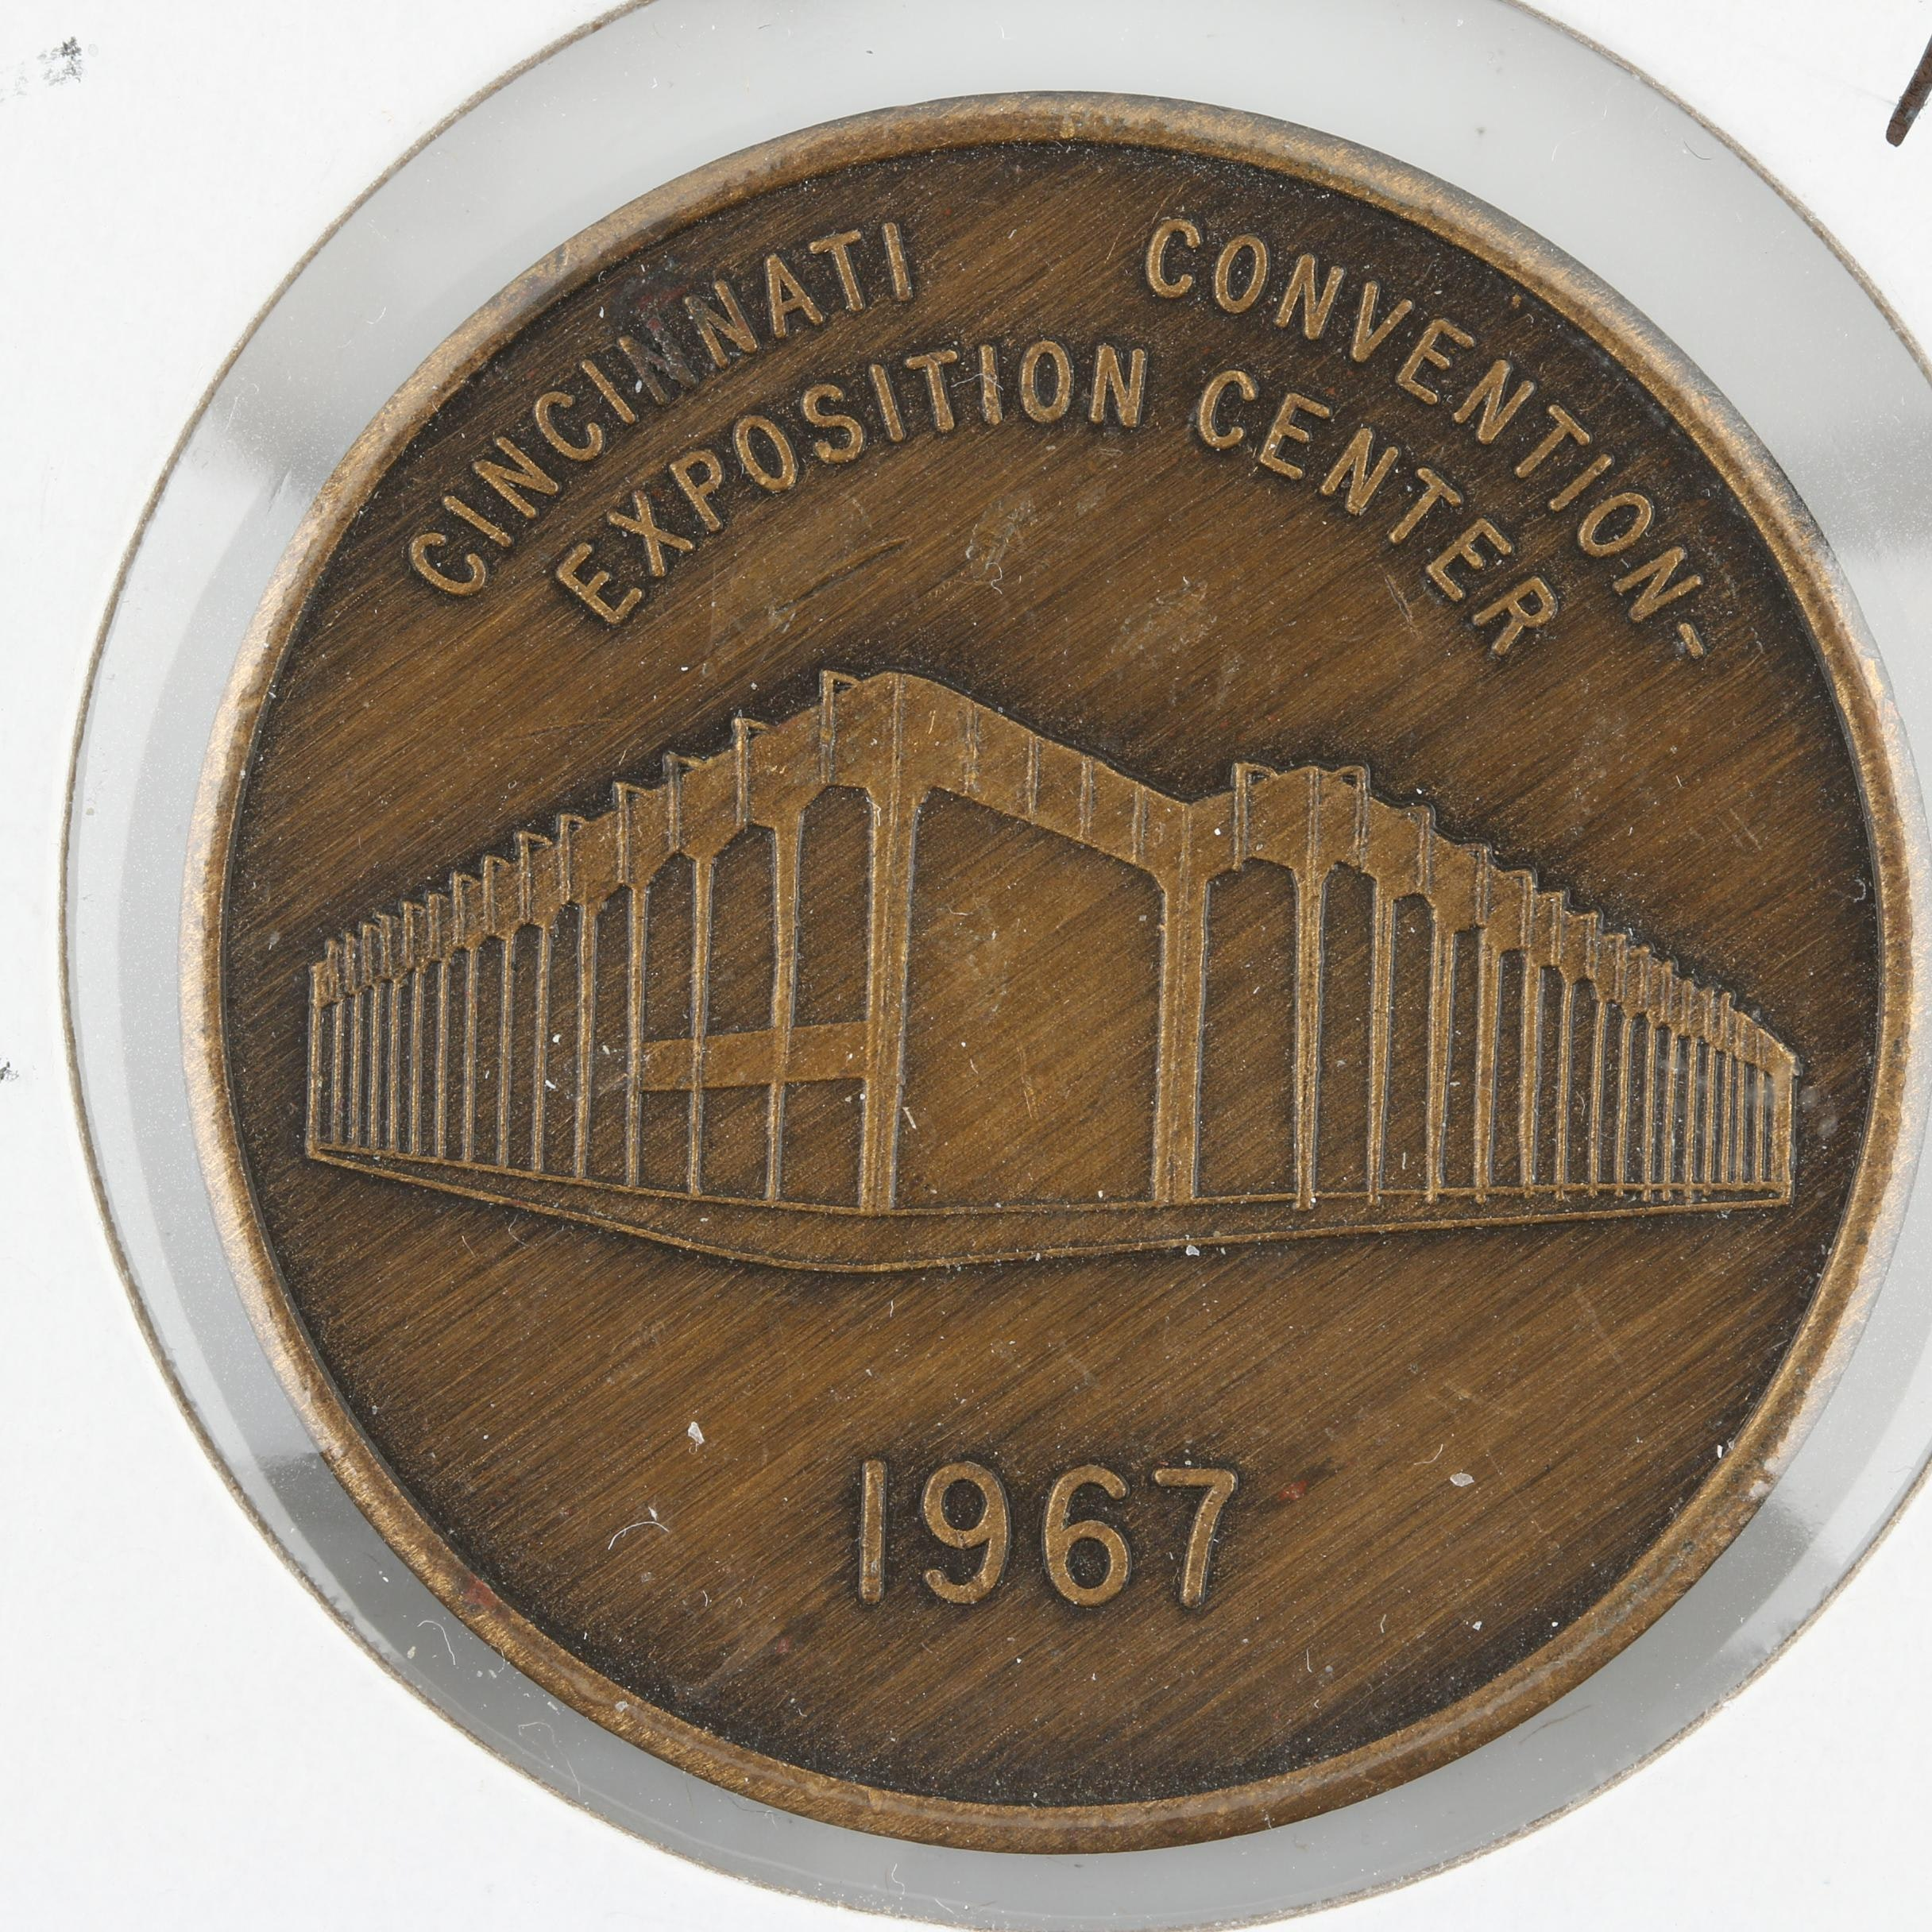 Bronze Medal Commemorating the 1967 Opening of the Cincinnati Convention Center